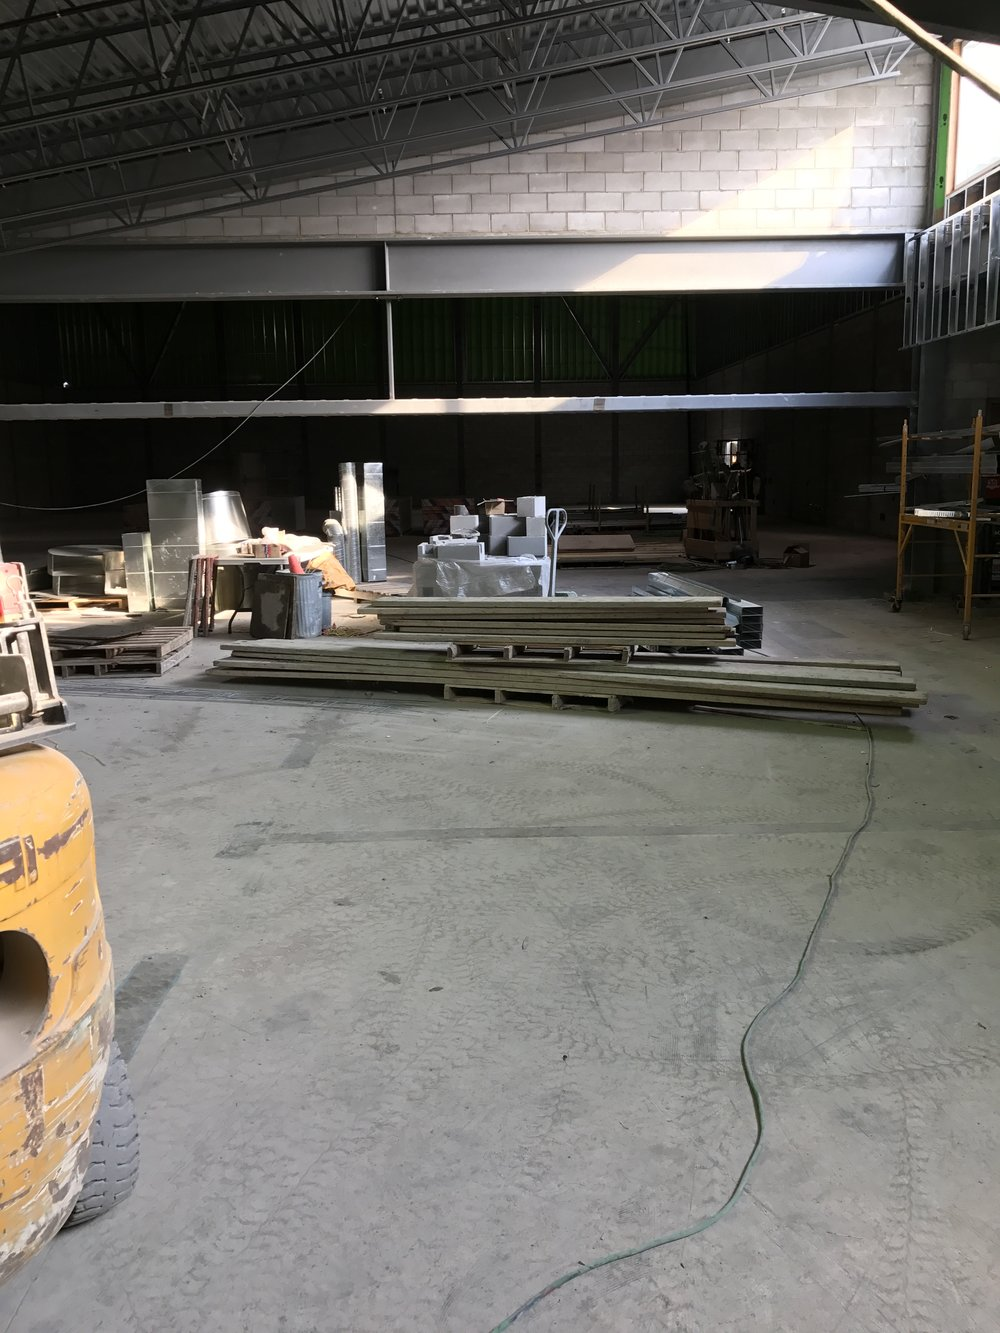 Looking north into our new gym! The metal beam will be removed and sliding glass doors will be across this entrance. Pretty cool!